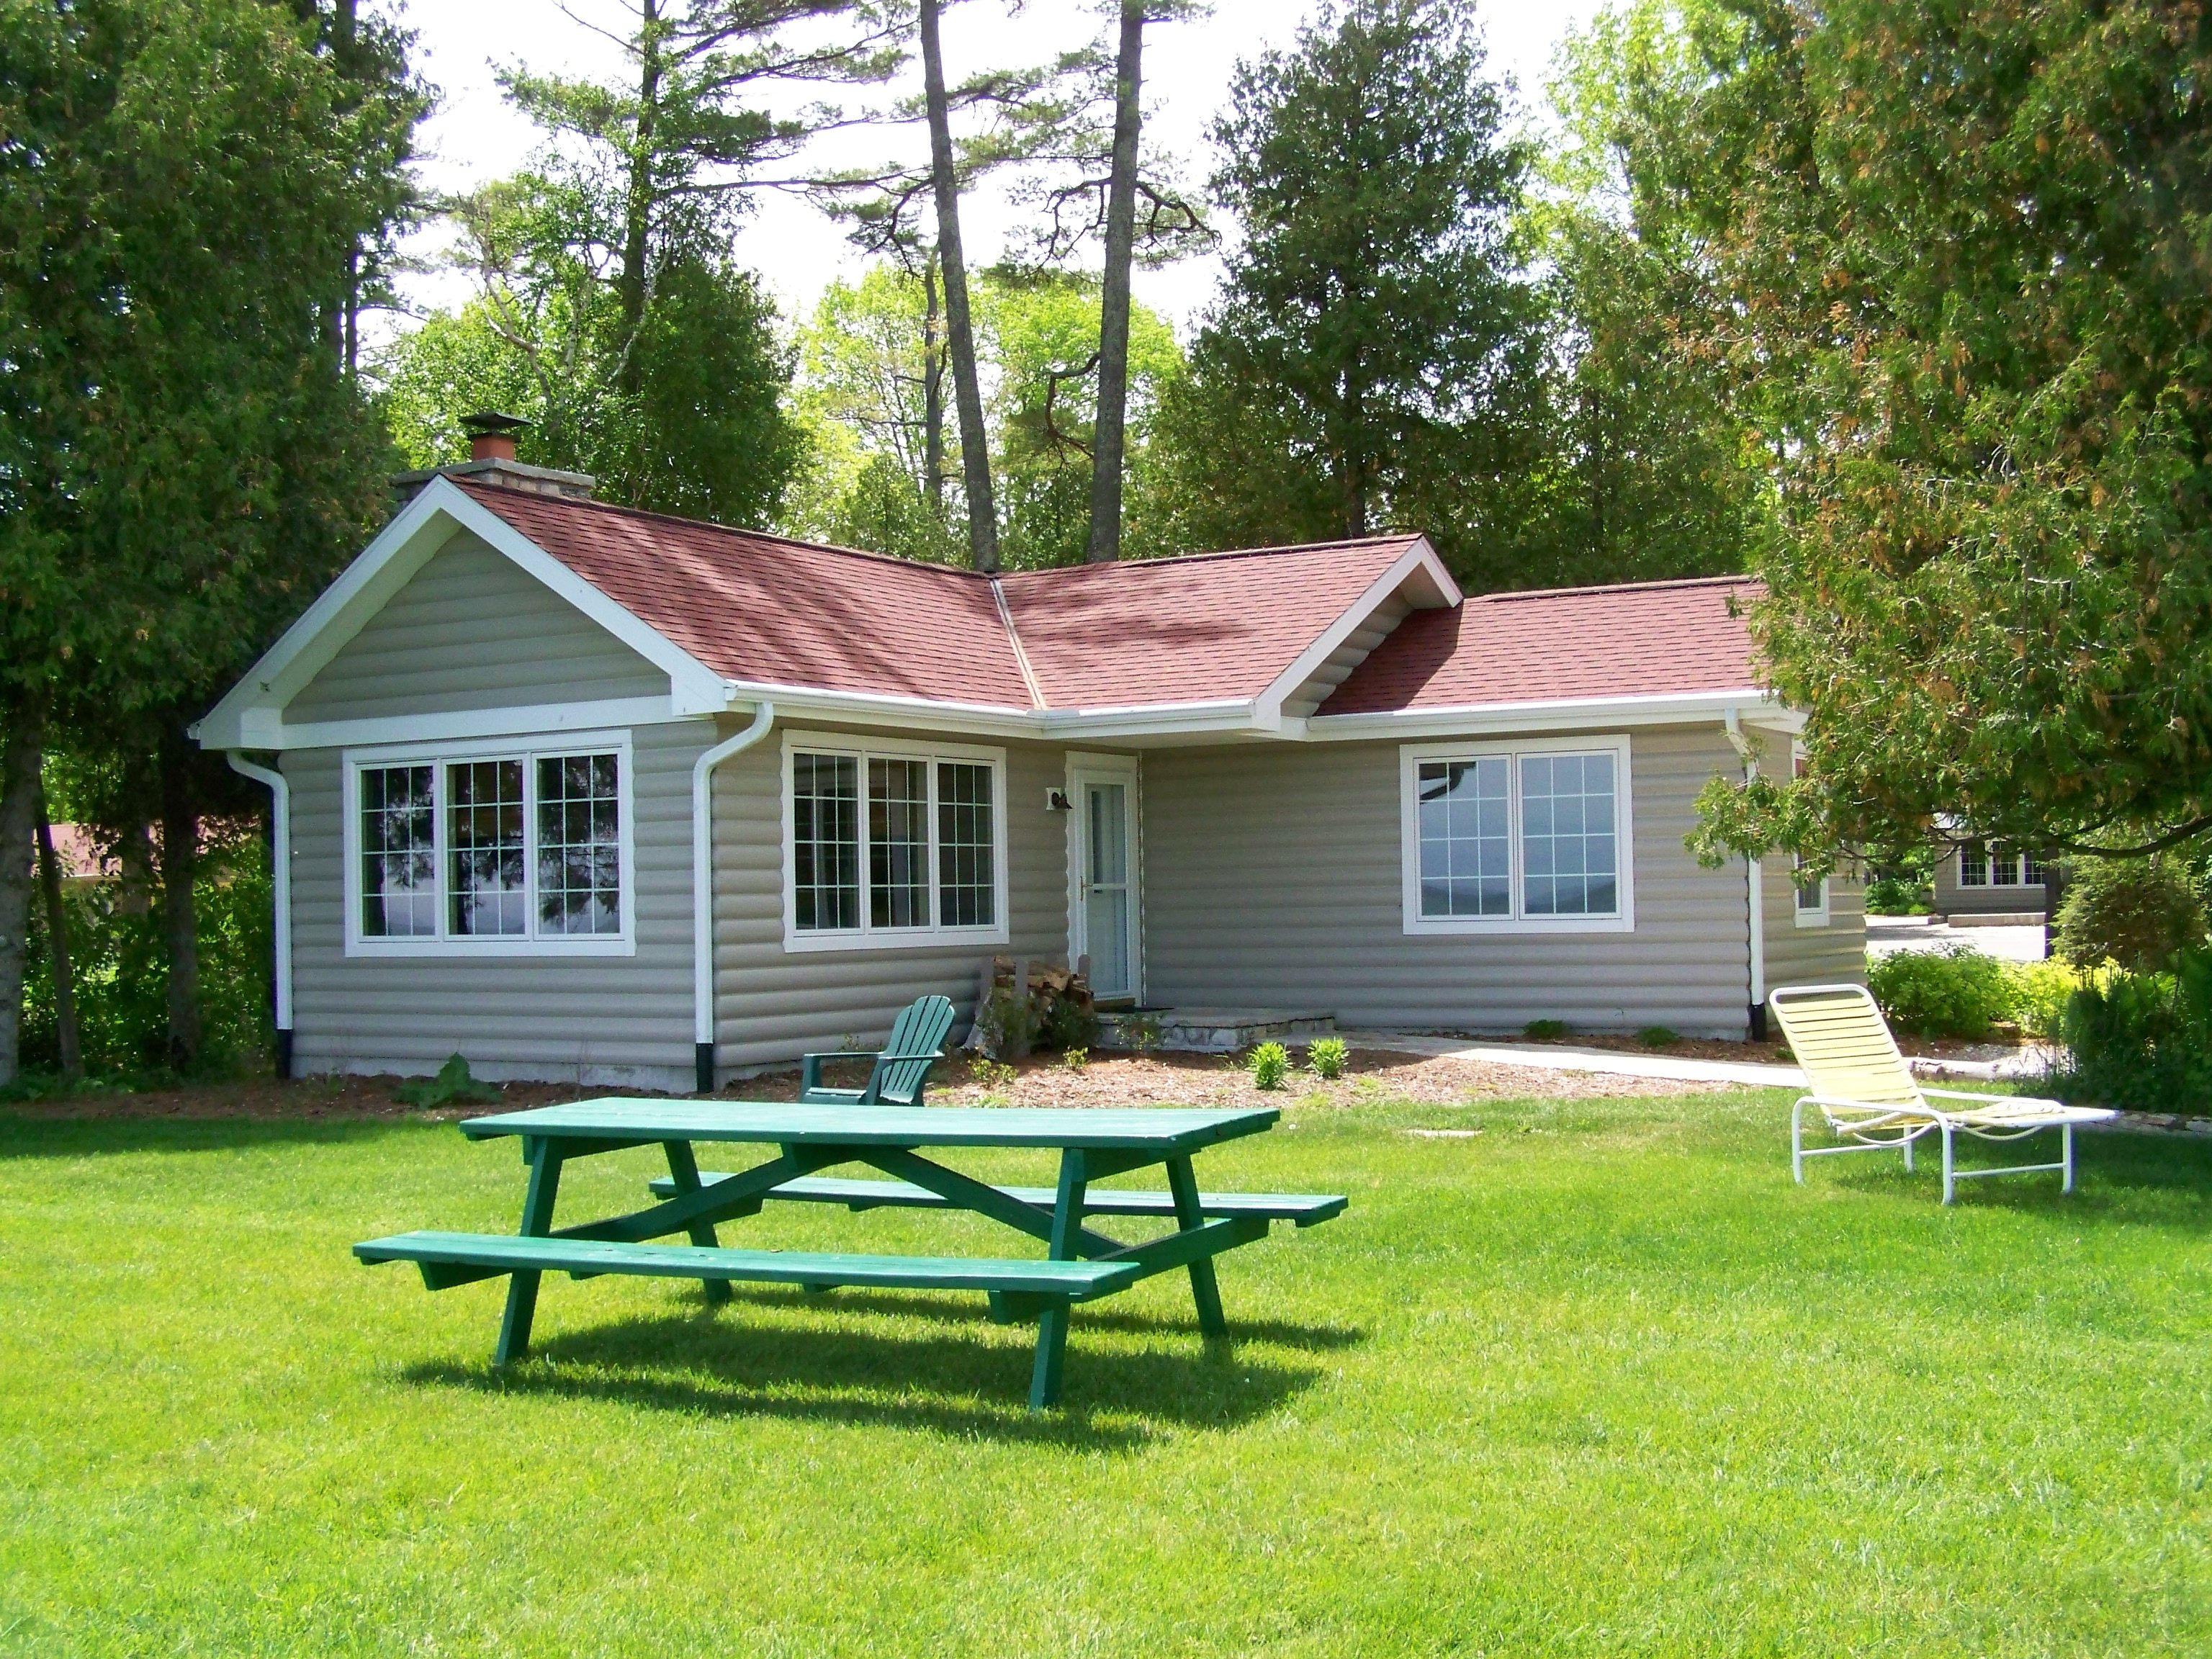 for sale cabins mn resort sm resorts coming summer wisconsin lodge cottages fishing vermilion family minnesota new lake